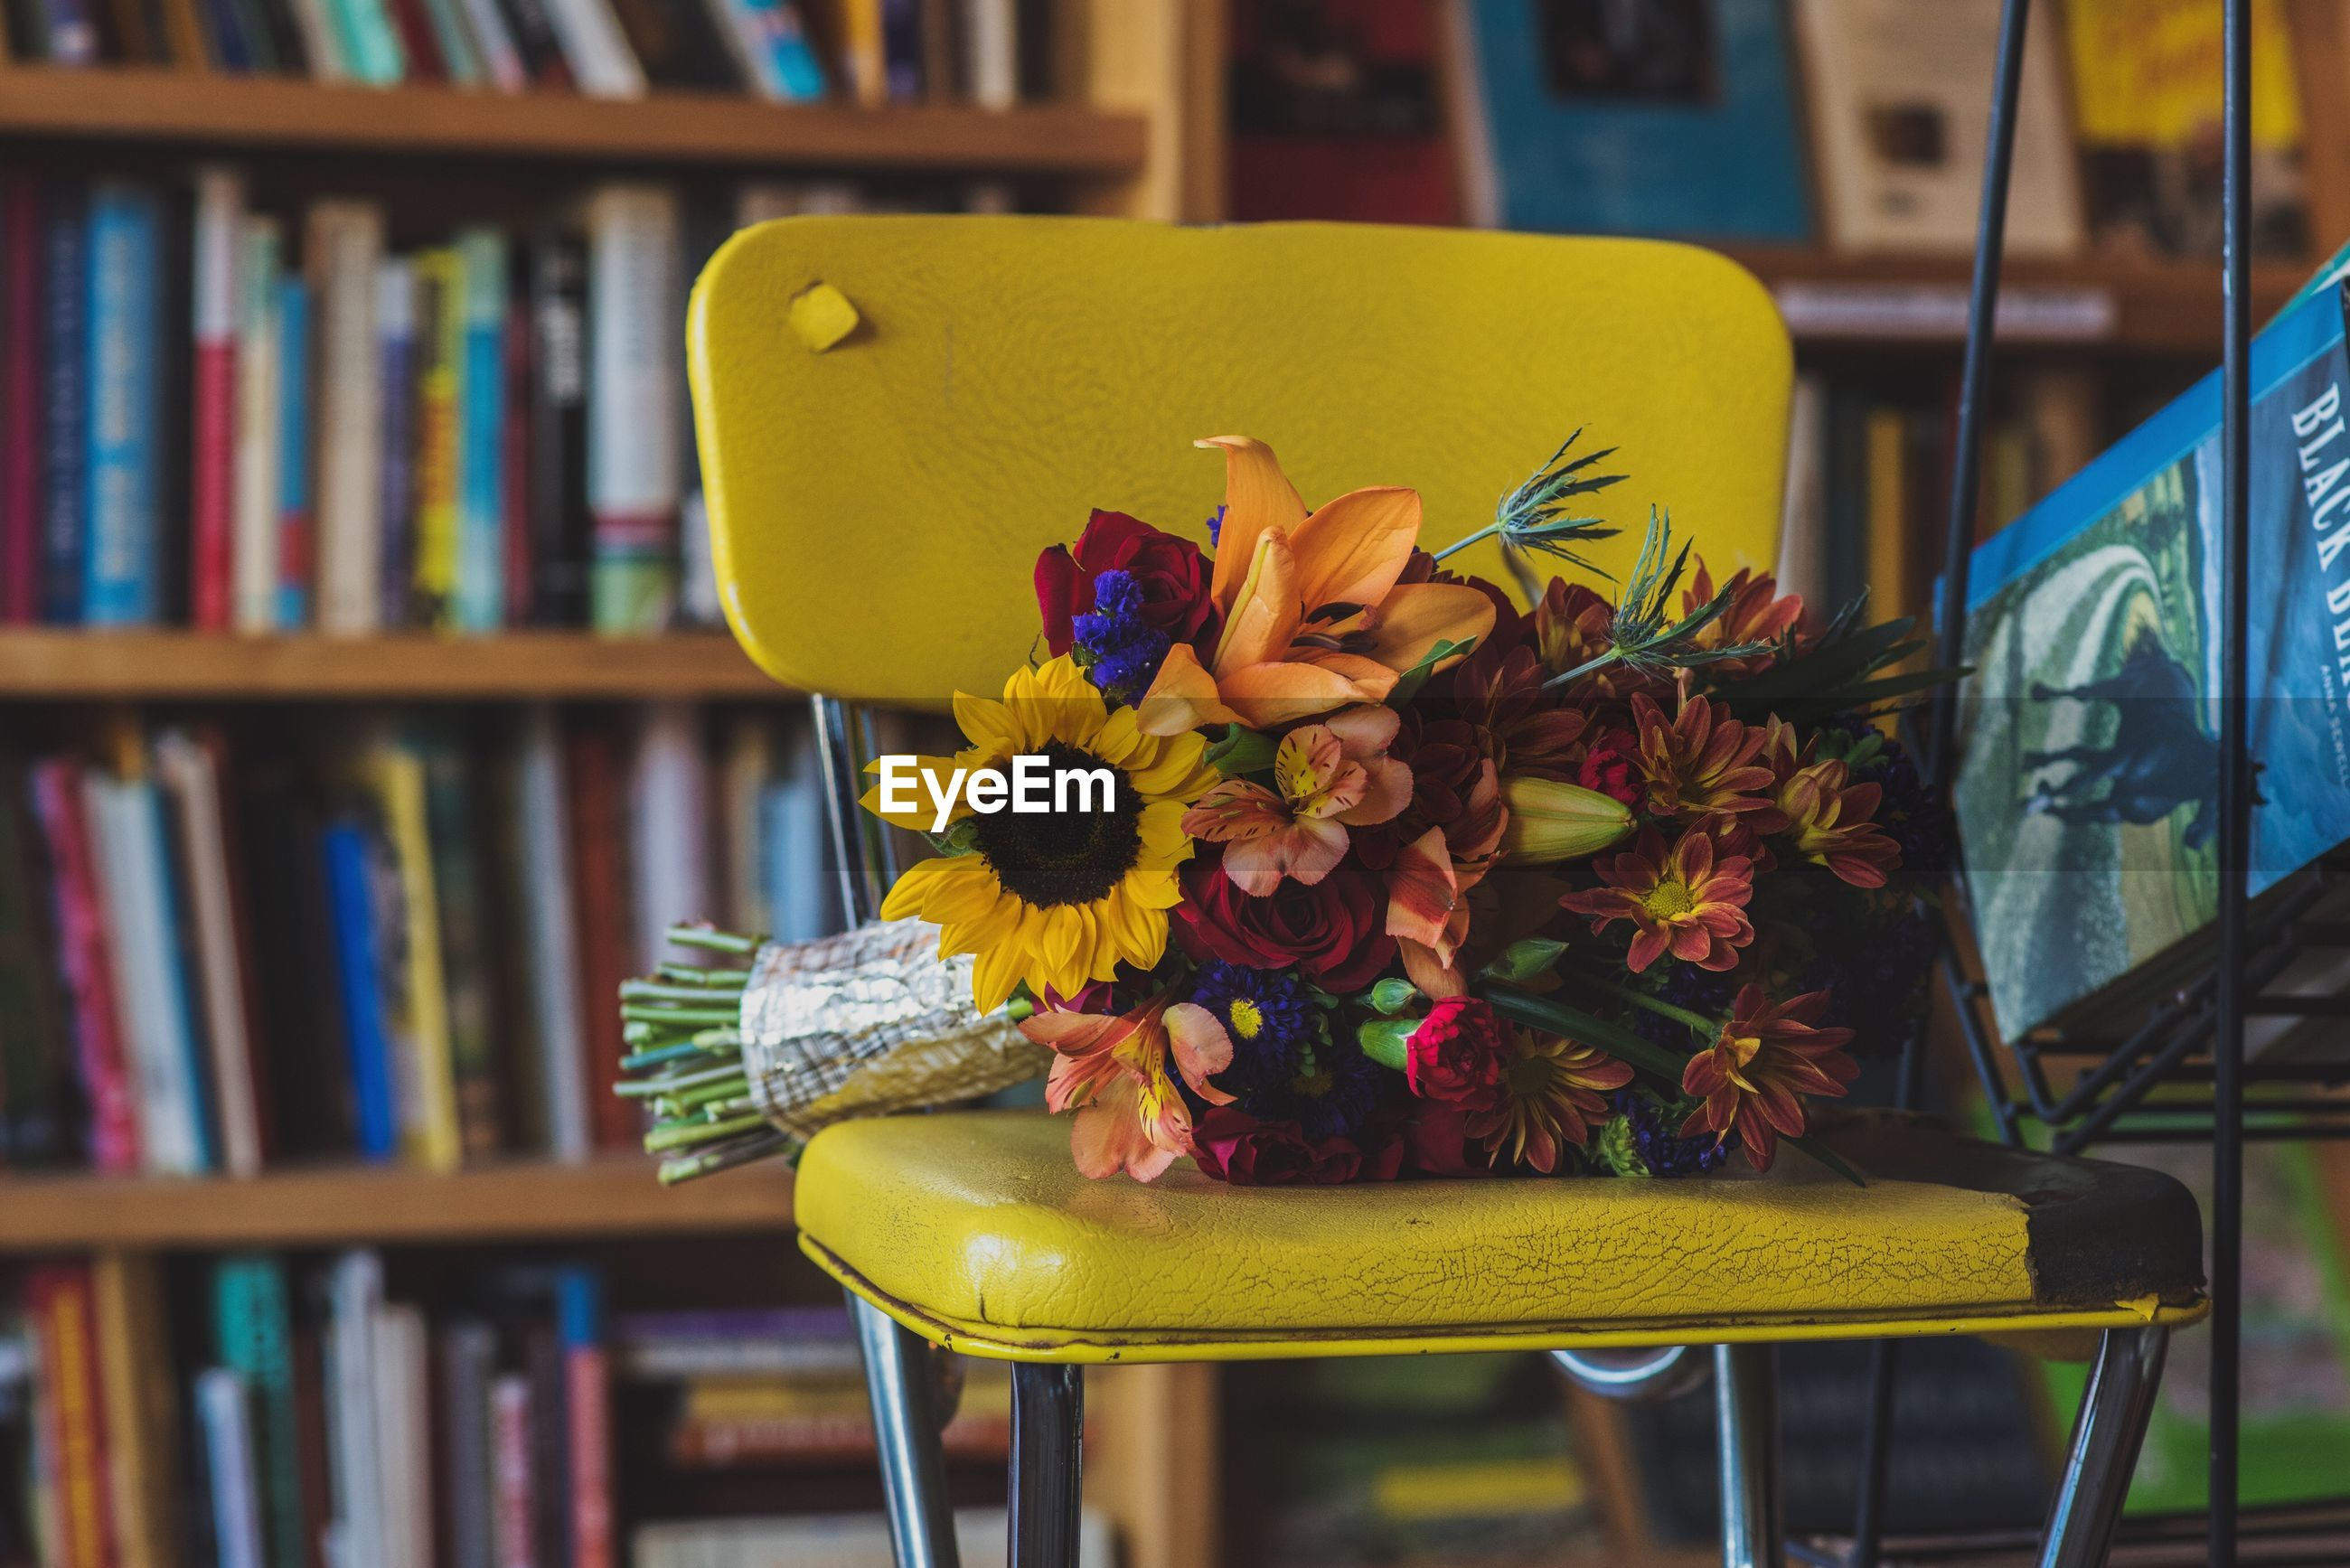 Close-up of yellow bouquet on chair